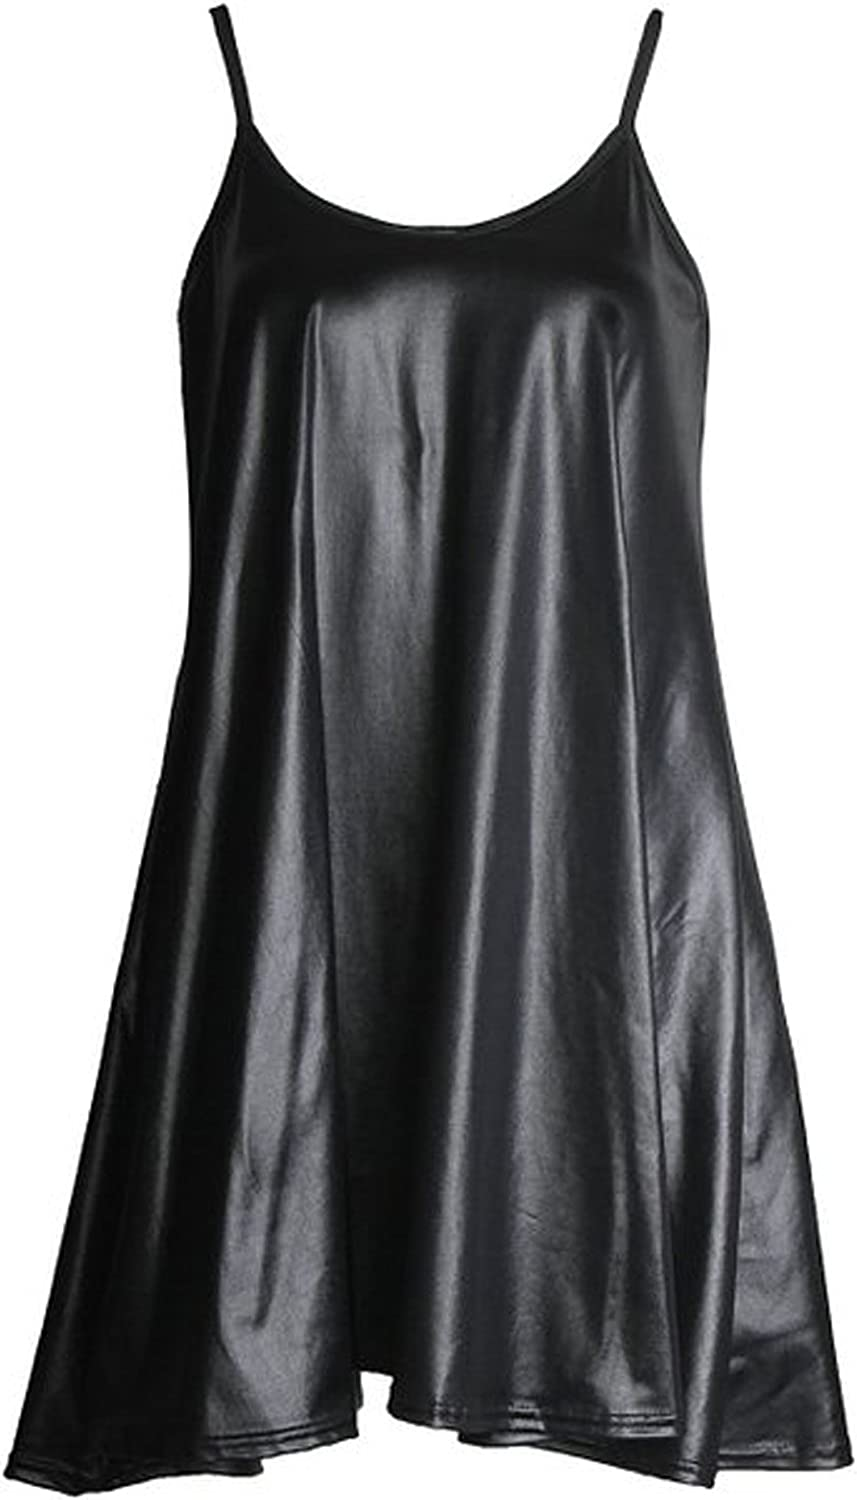 Women/'s Camisole Cami Flared Skater Strappy Vest Top Swing Dress Wet Look